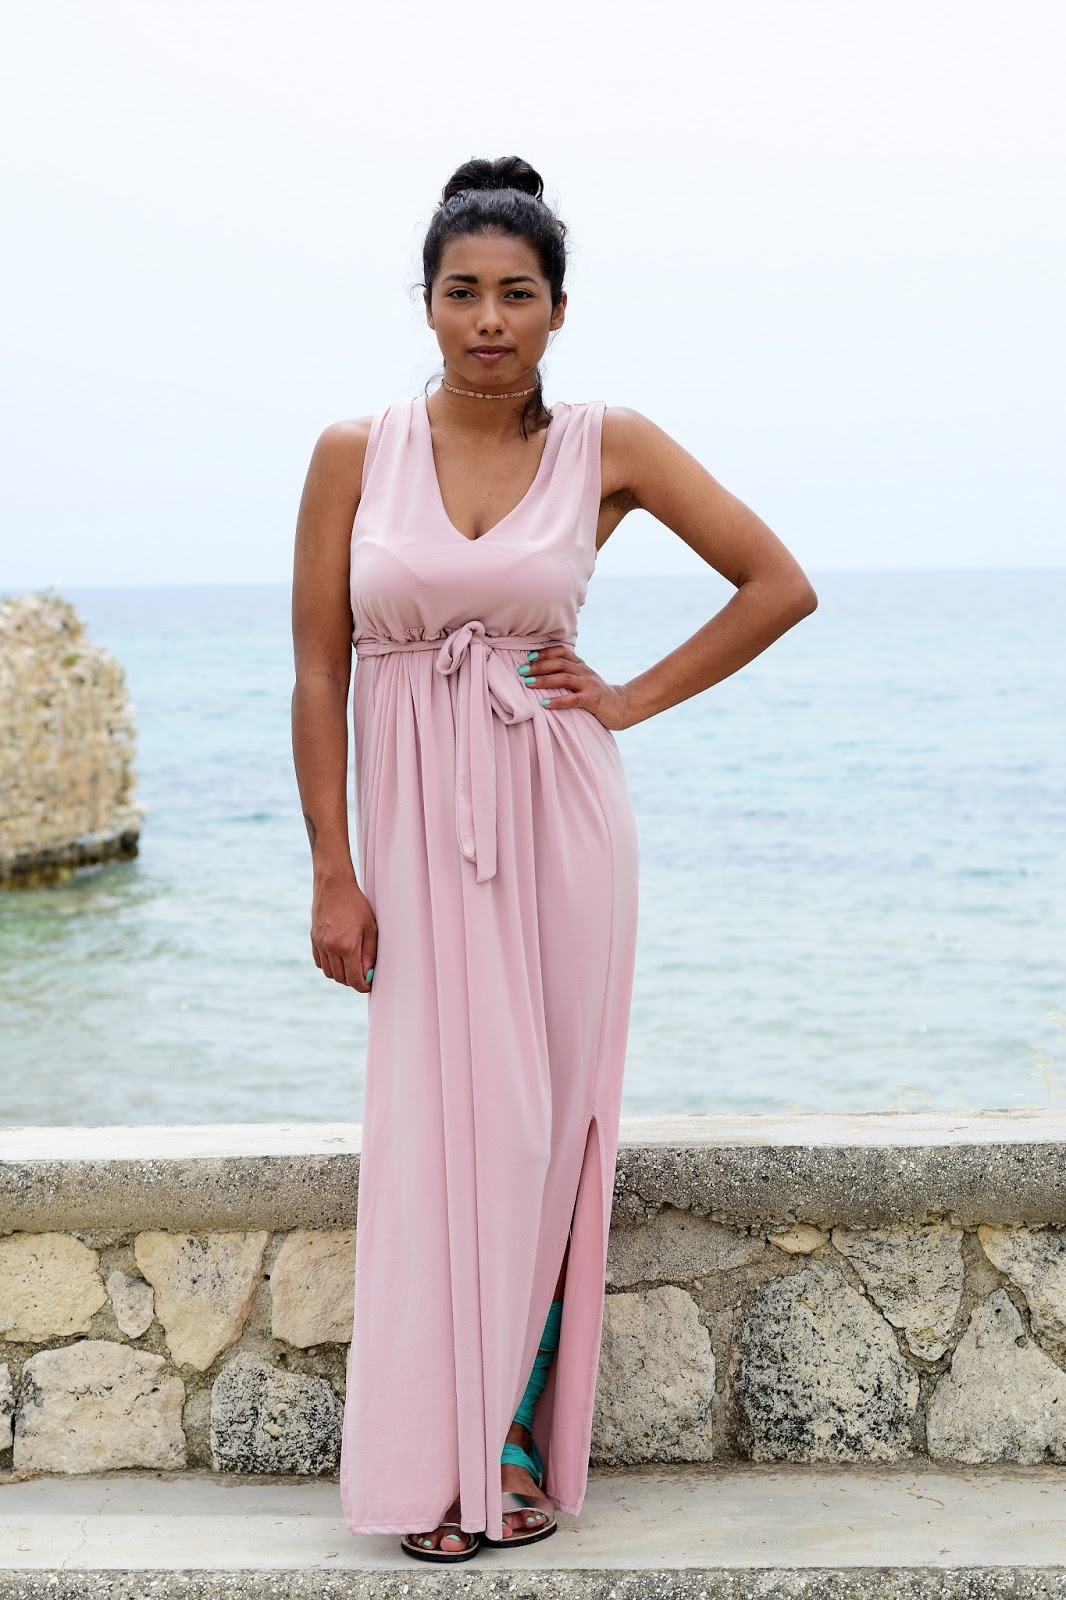 Grecian Dress and gladiator sandals outfit ideas